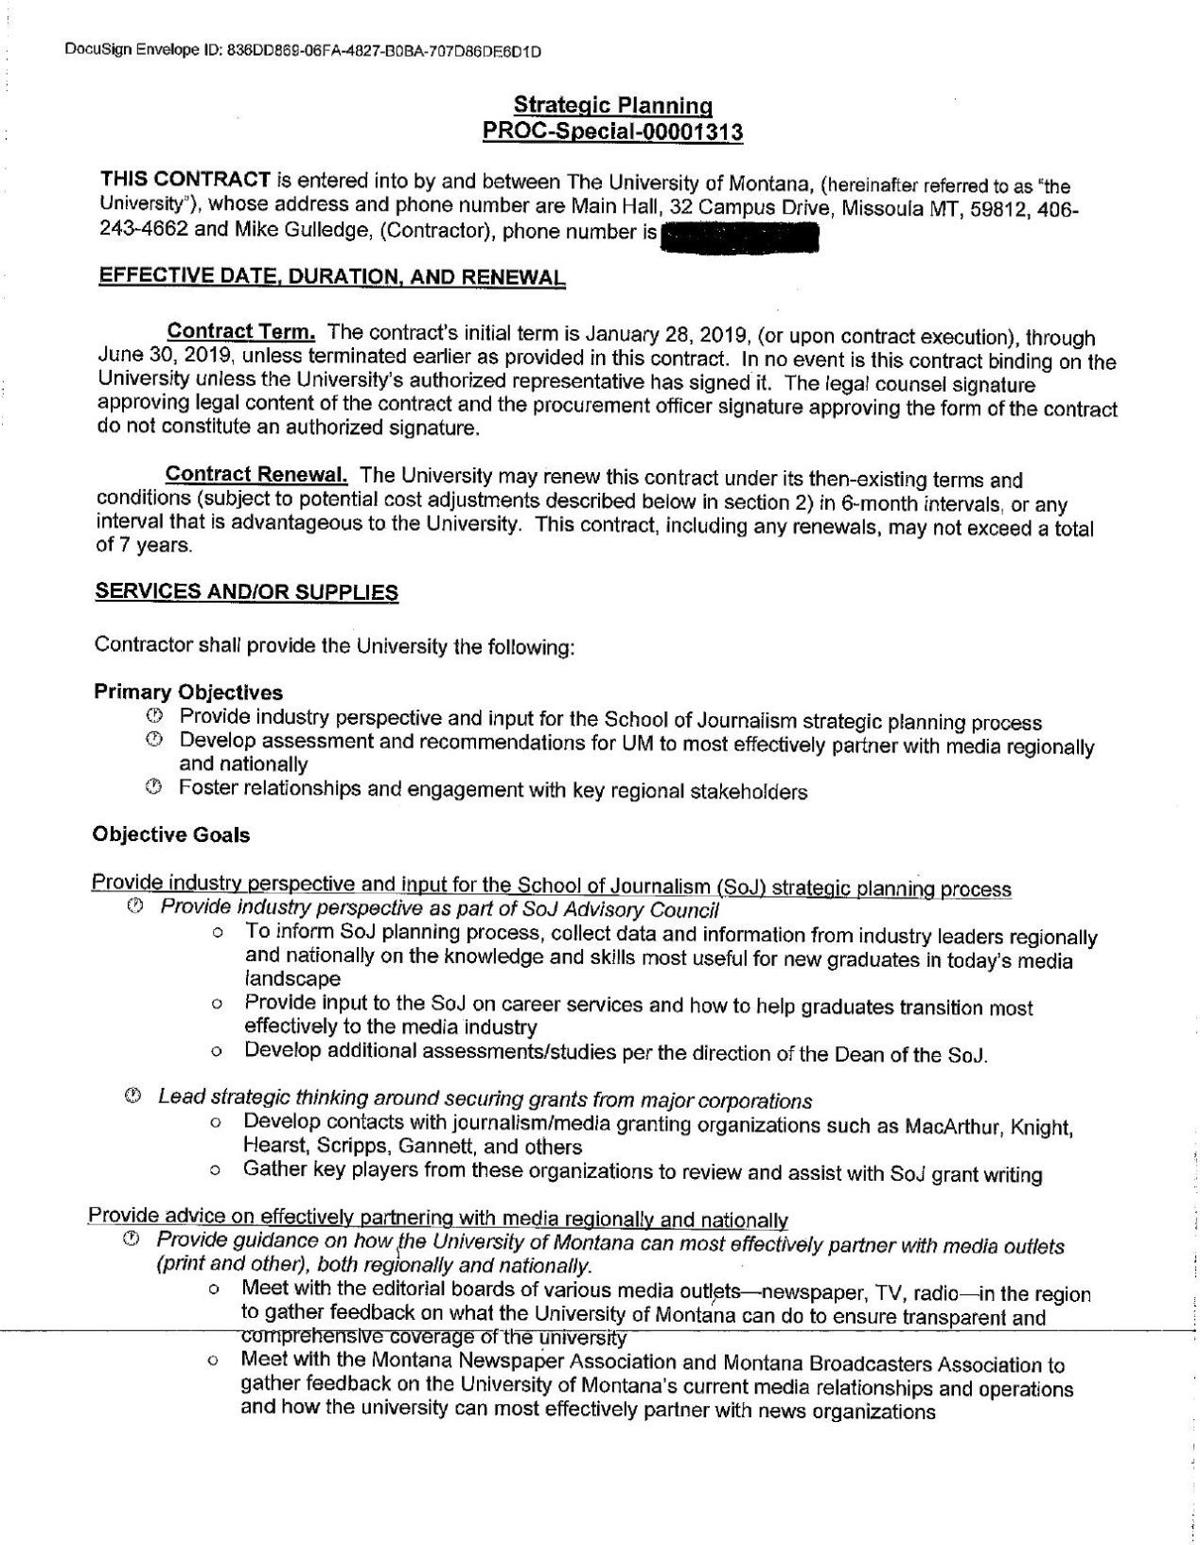 UM Contract with Mike Gulledge